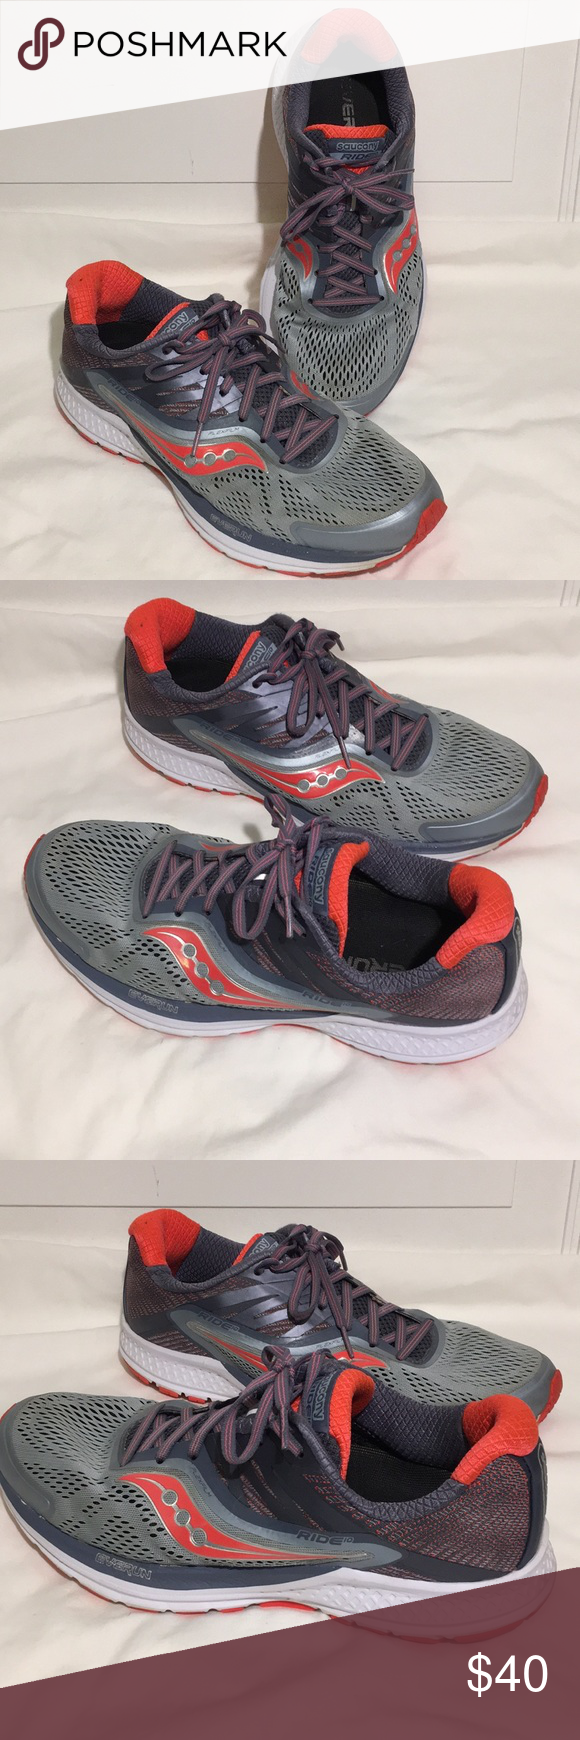 saucony ride 10 size 10.5, OFF 77%,Free